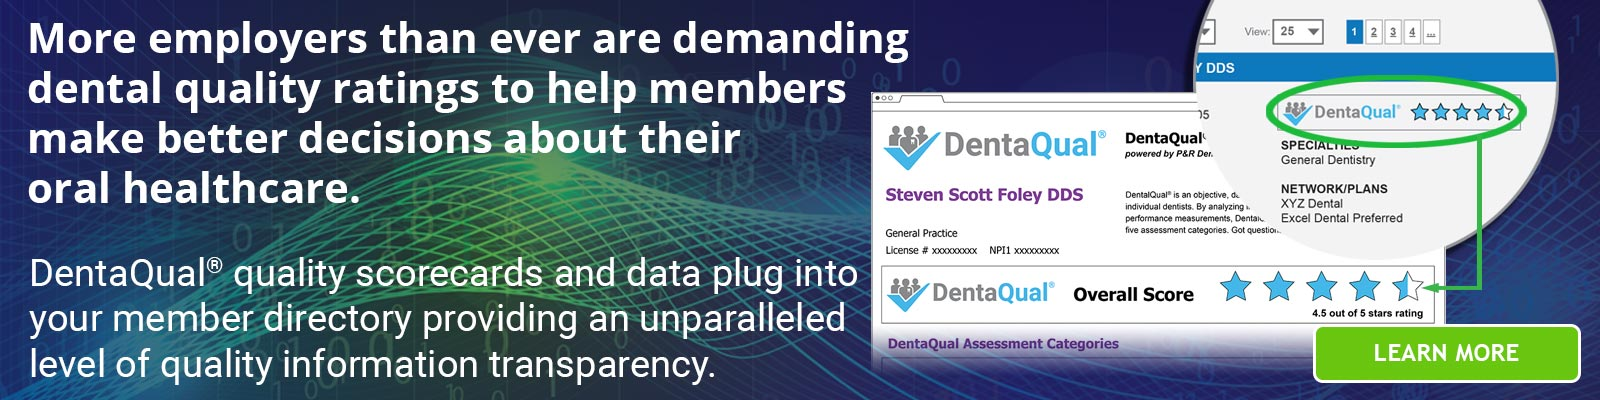 More employers than ever are demanding dental quality ratings. DentaQual delivers them.